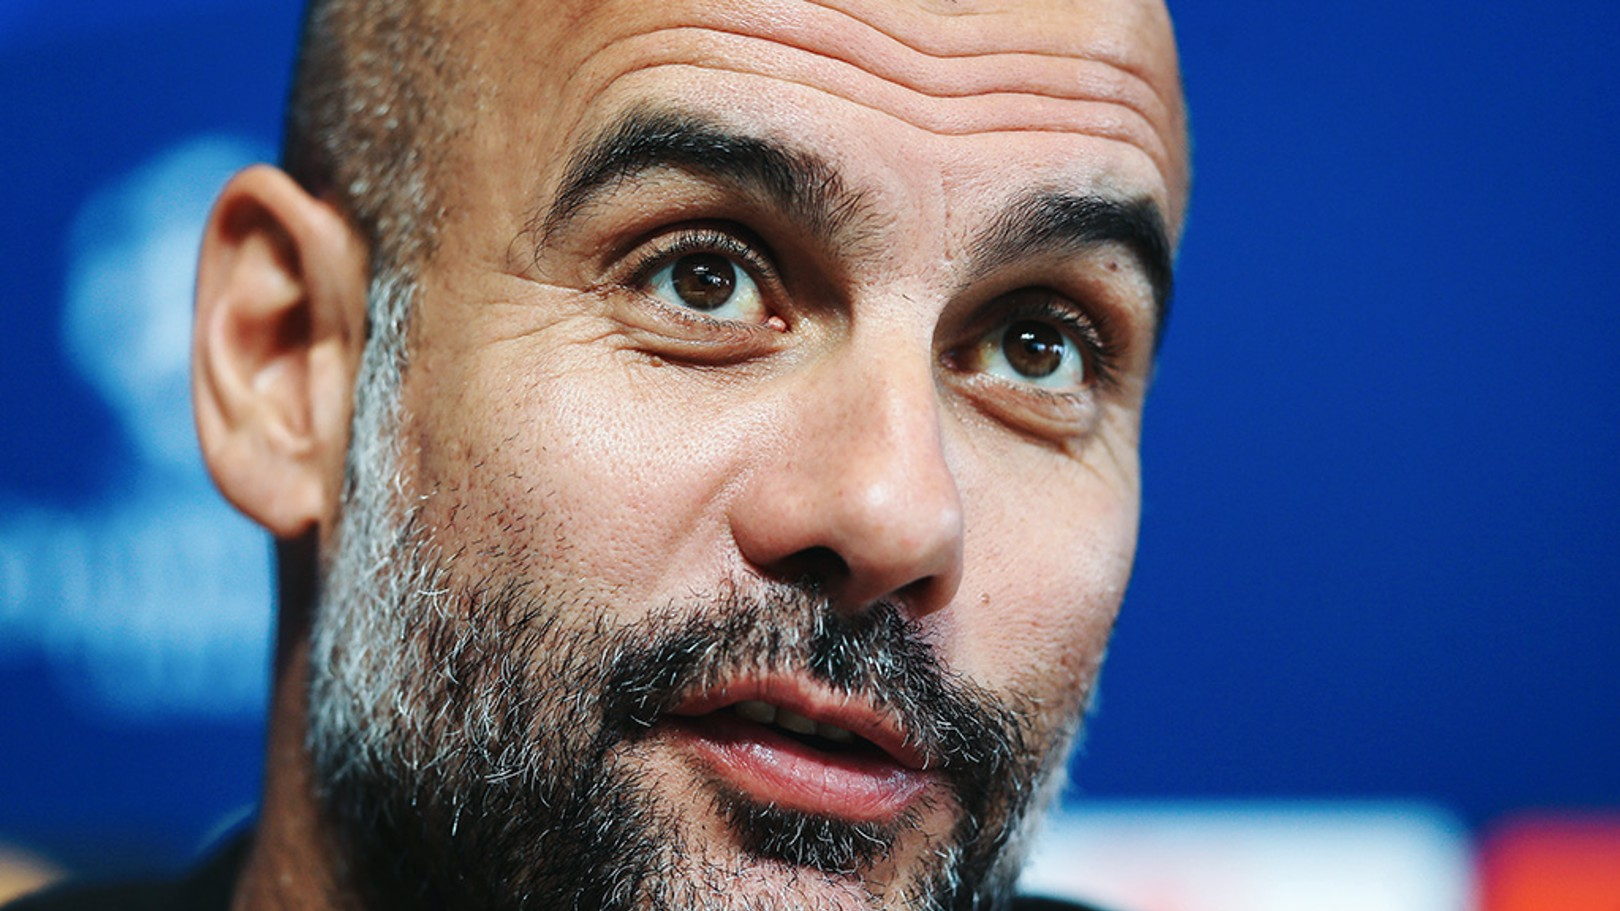 Guardiola: We are all in this together